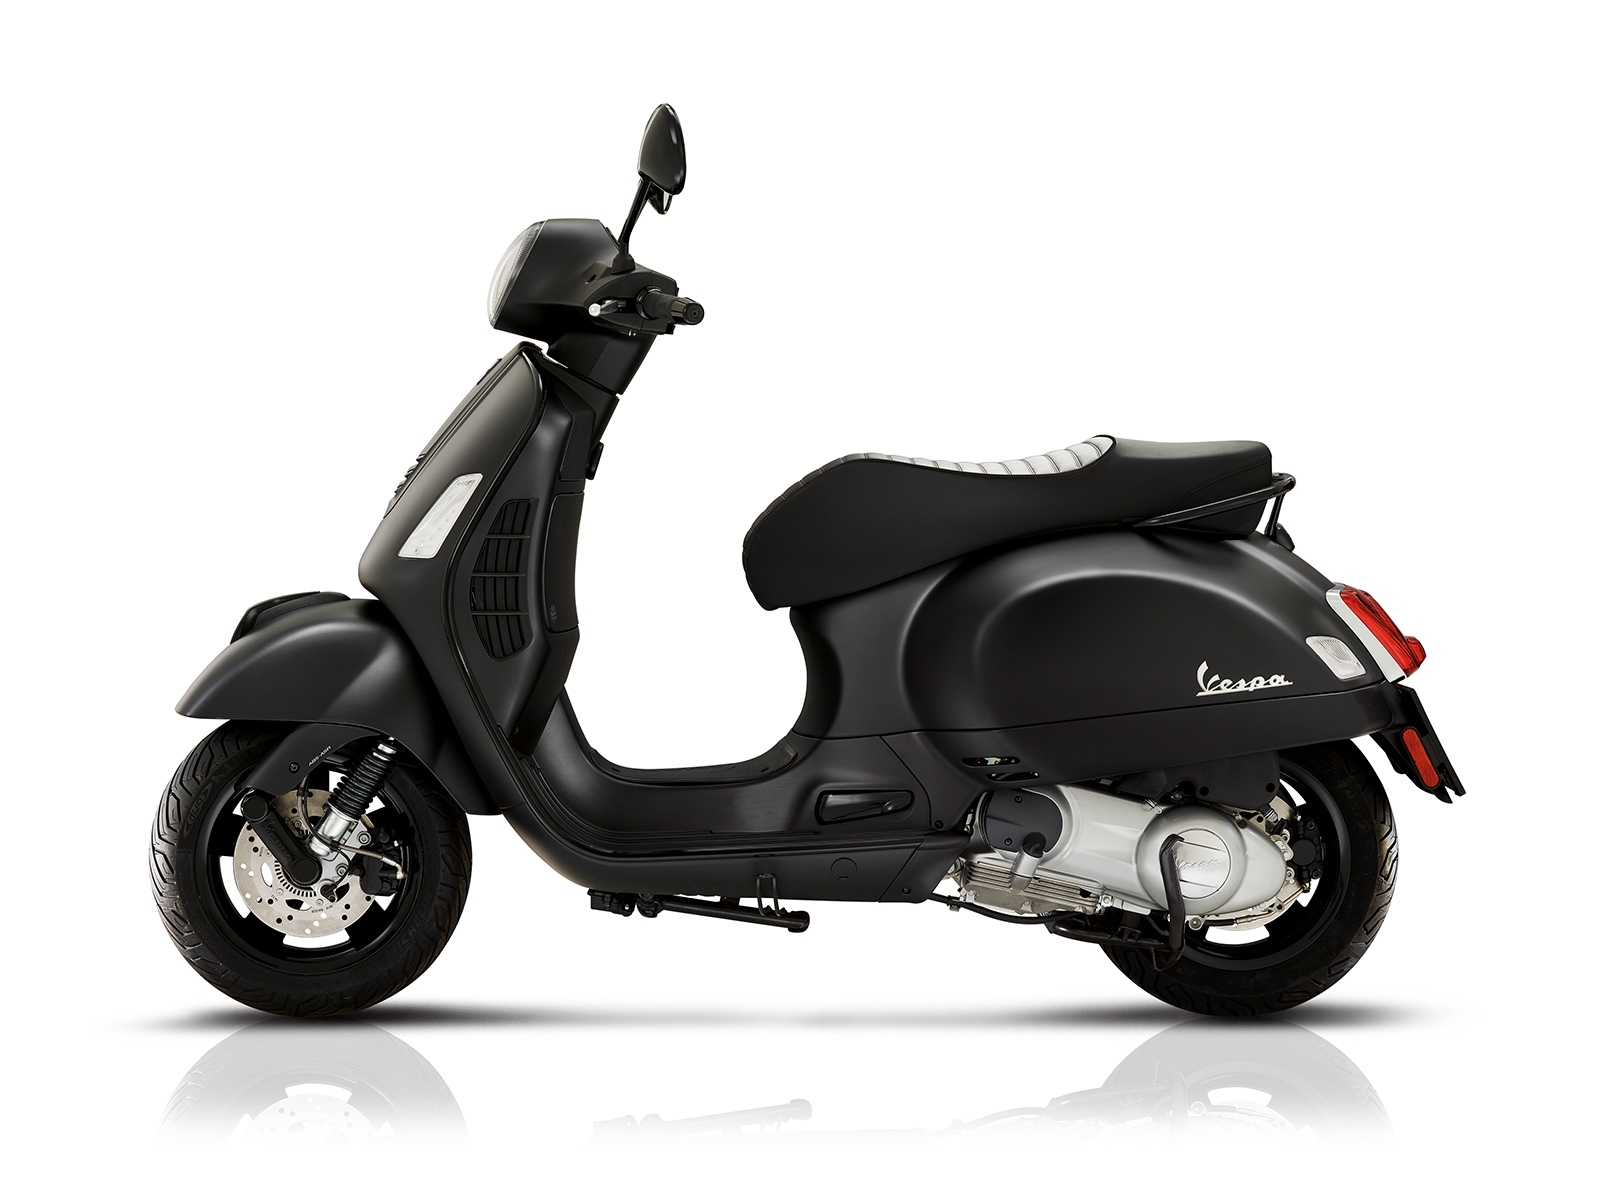 1000908-9583-vespa-vespa-gts-125-super-notte-verylarge